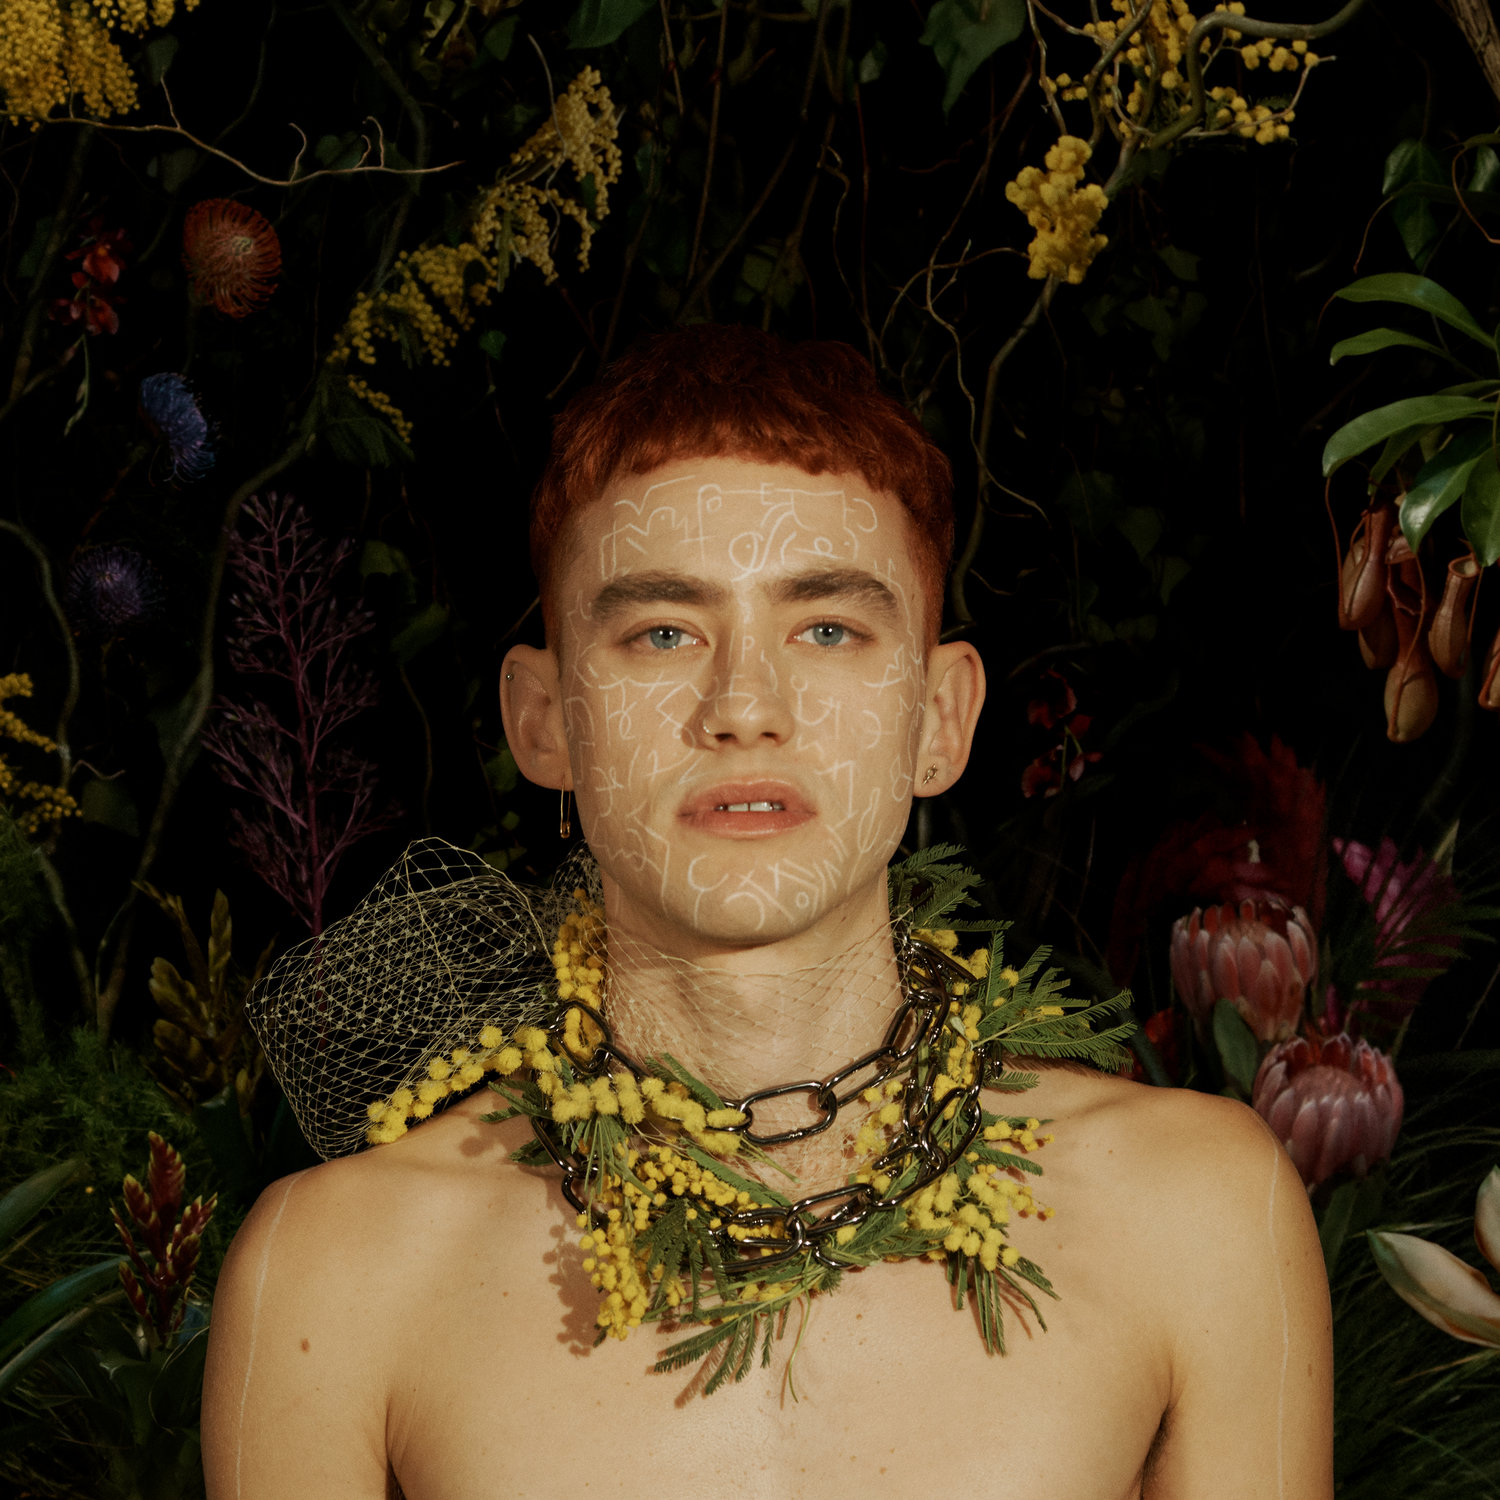 YEARS AND YEARS -  PALO SANTO